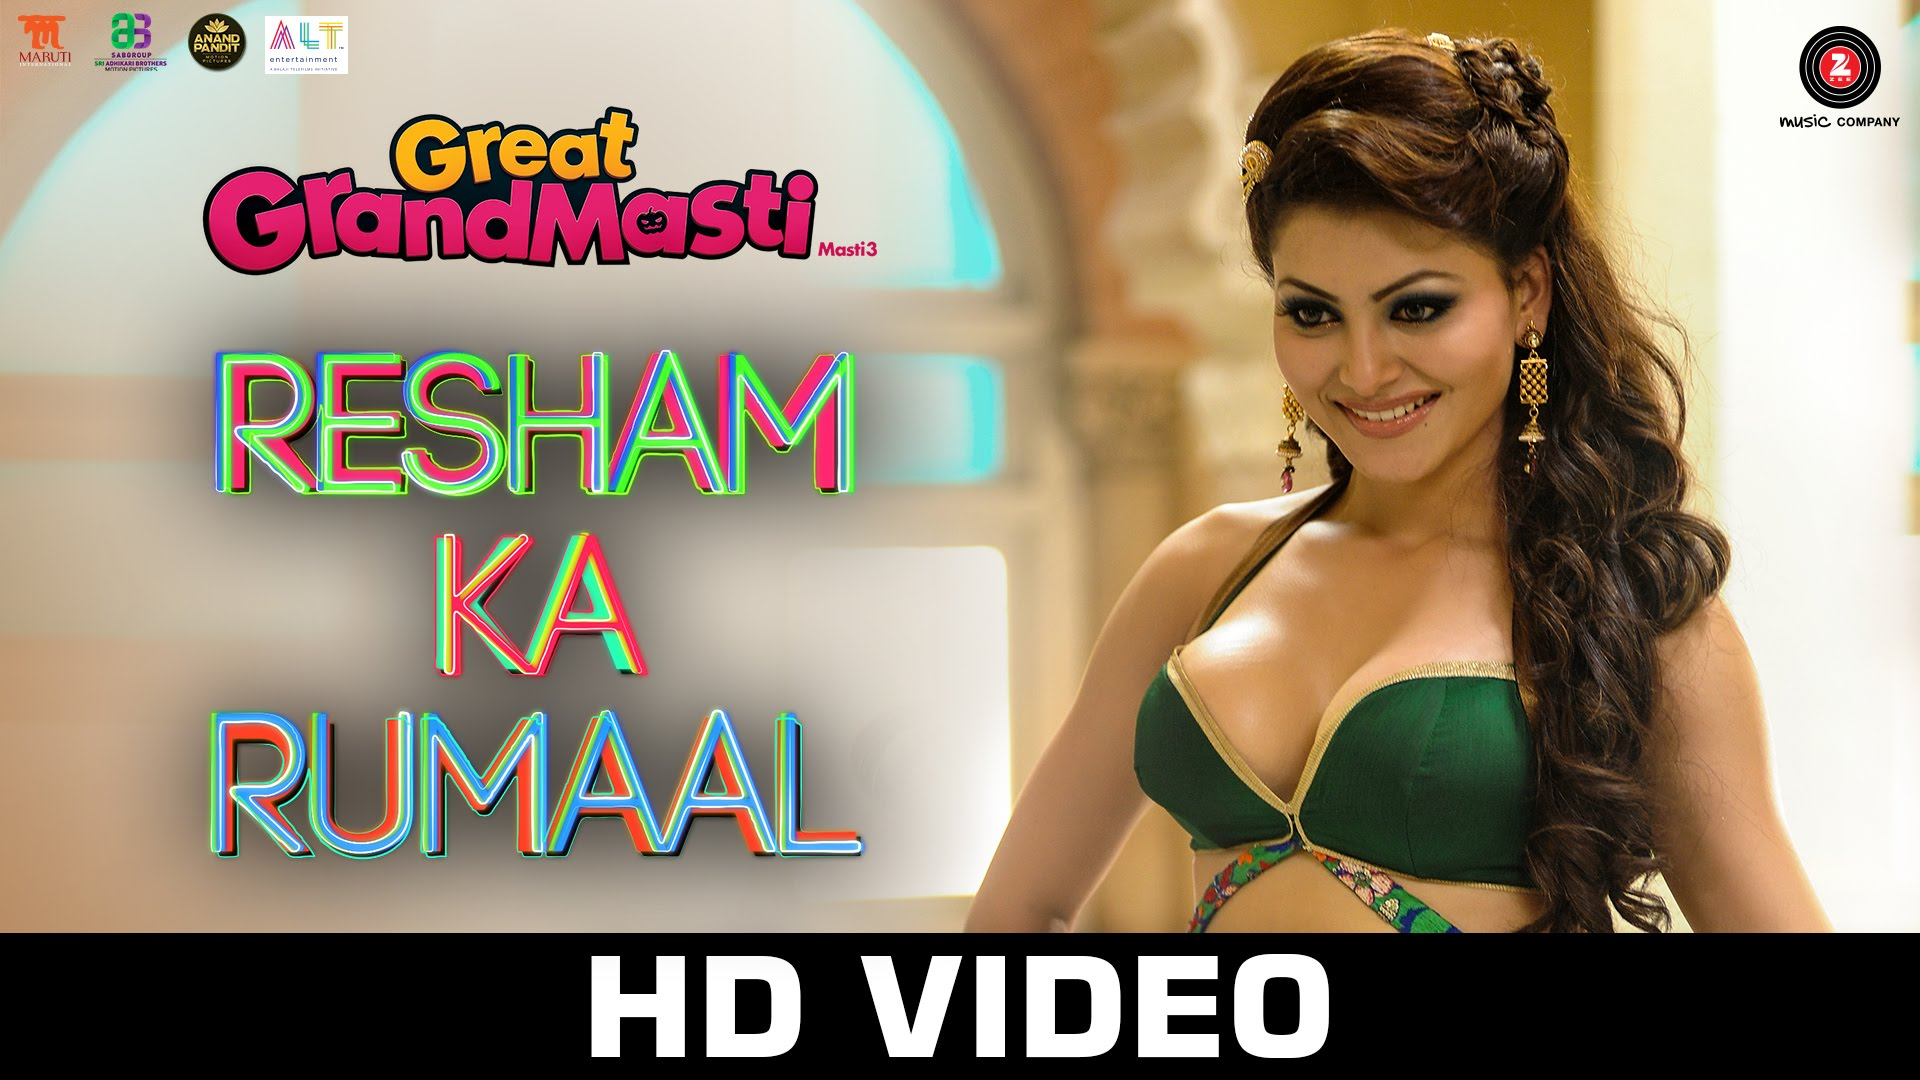 Urvashi Rautela is all charms in Resham Ka Rumaal from Great Grand Masti